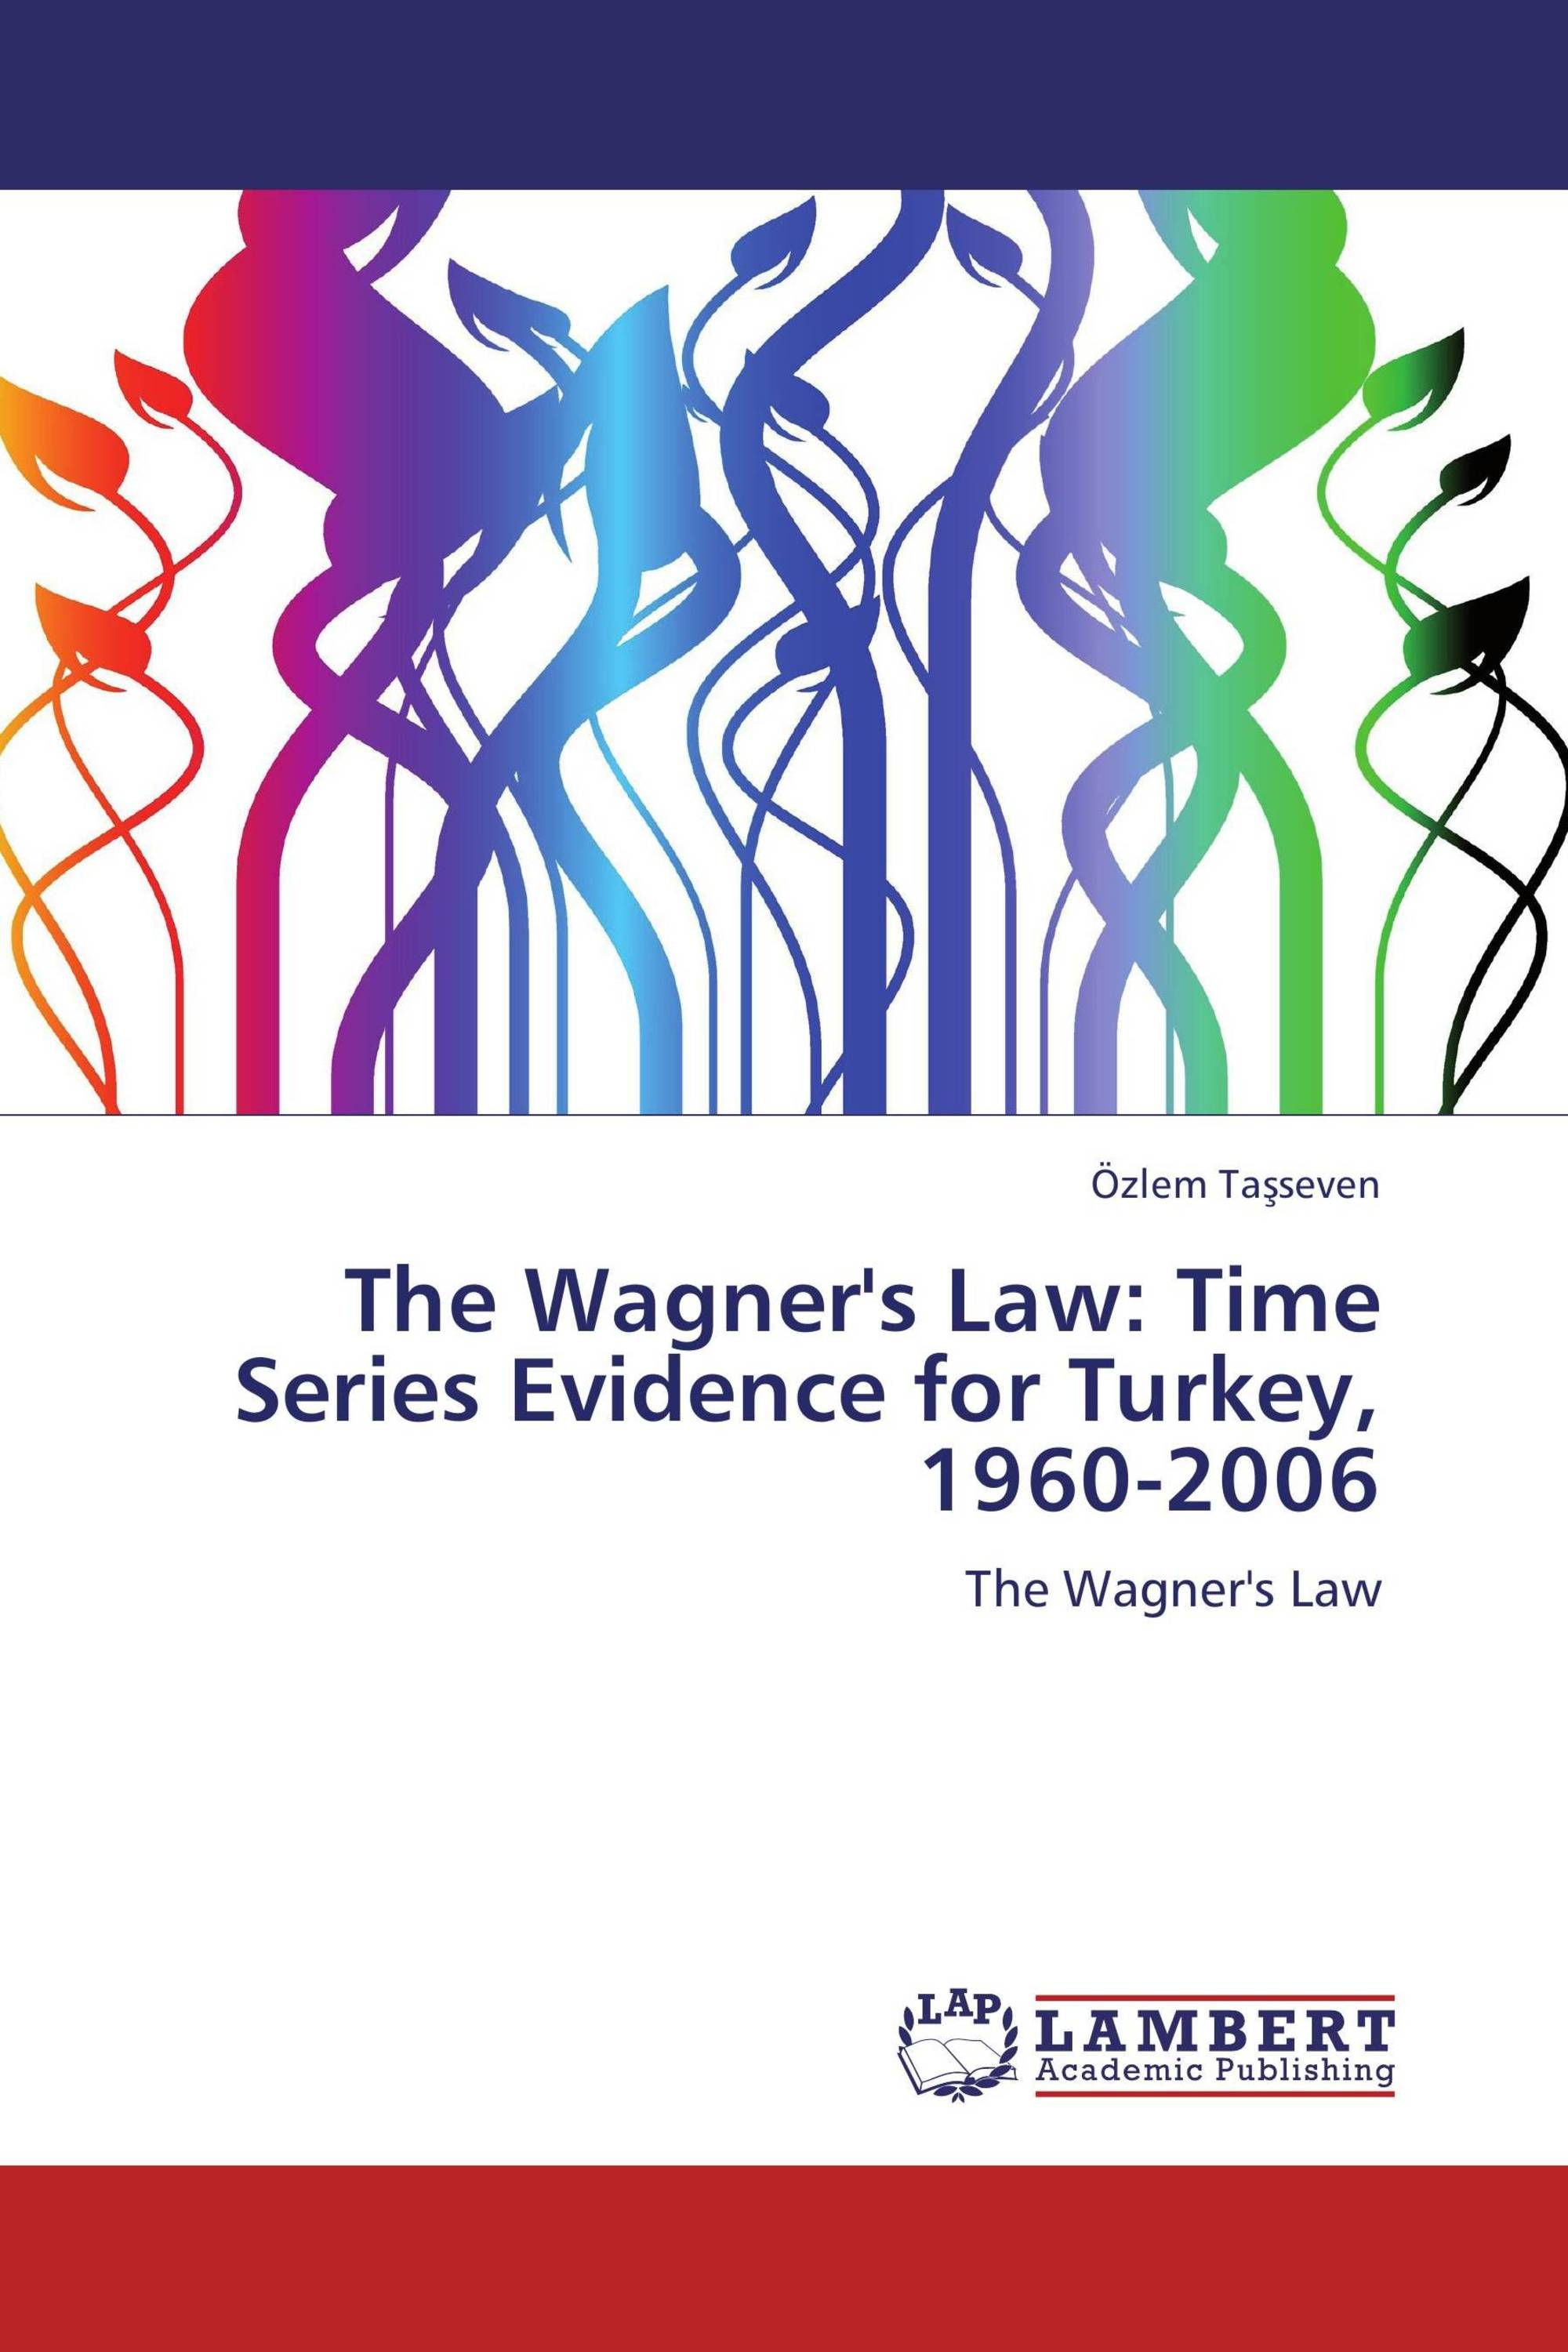 The Wagner's Law: Time Series Evidence for Turkey, 1960-2006